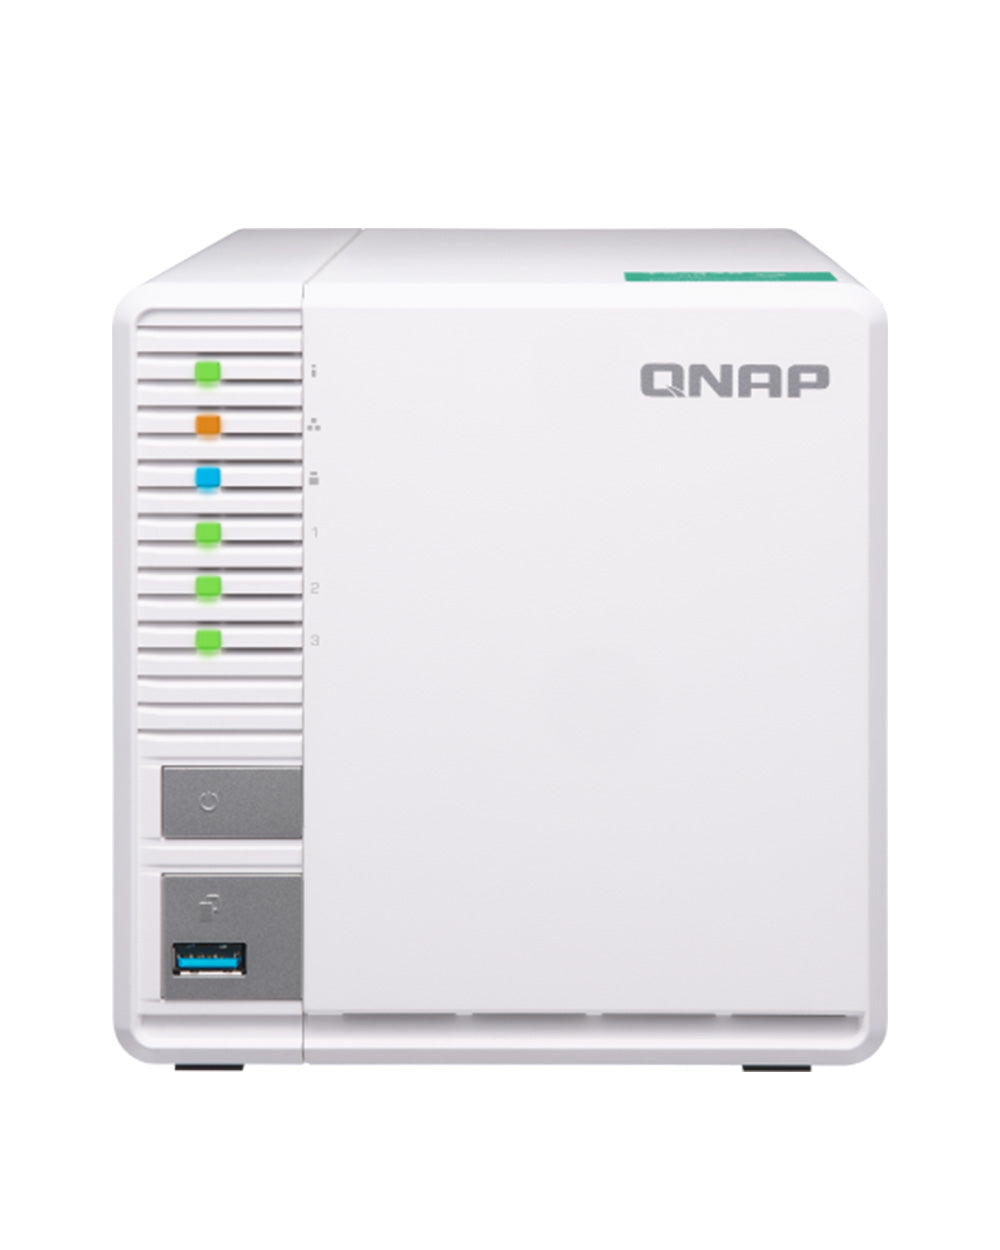 QNAP TS‑328 Diskless 3-Bay NAS